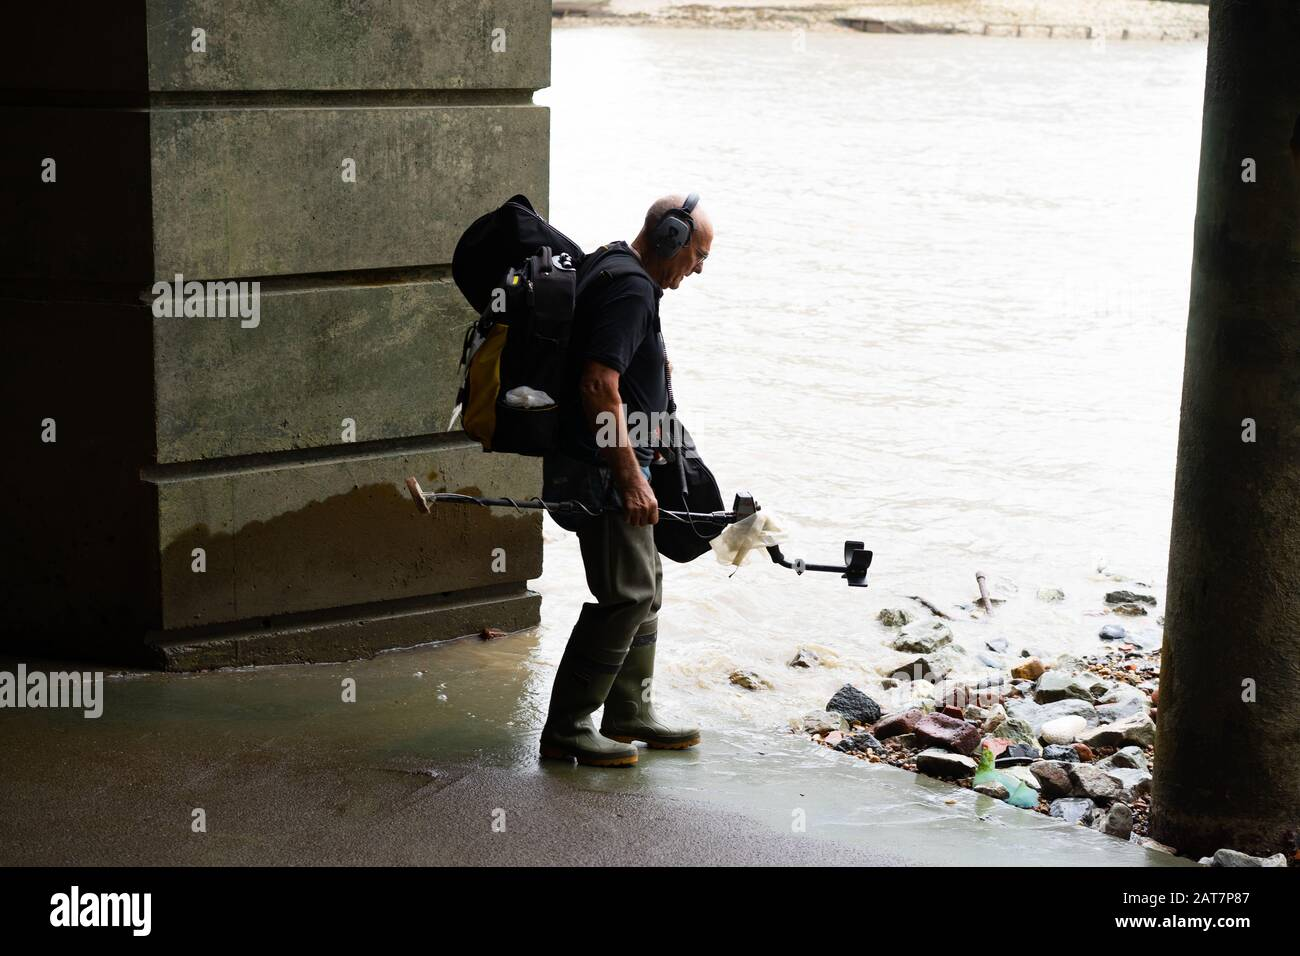 A man with metal detector works his way along the river Thames foreshore, a popular place for mudlarking and archaeological finds. Stock Photo